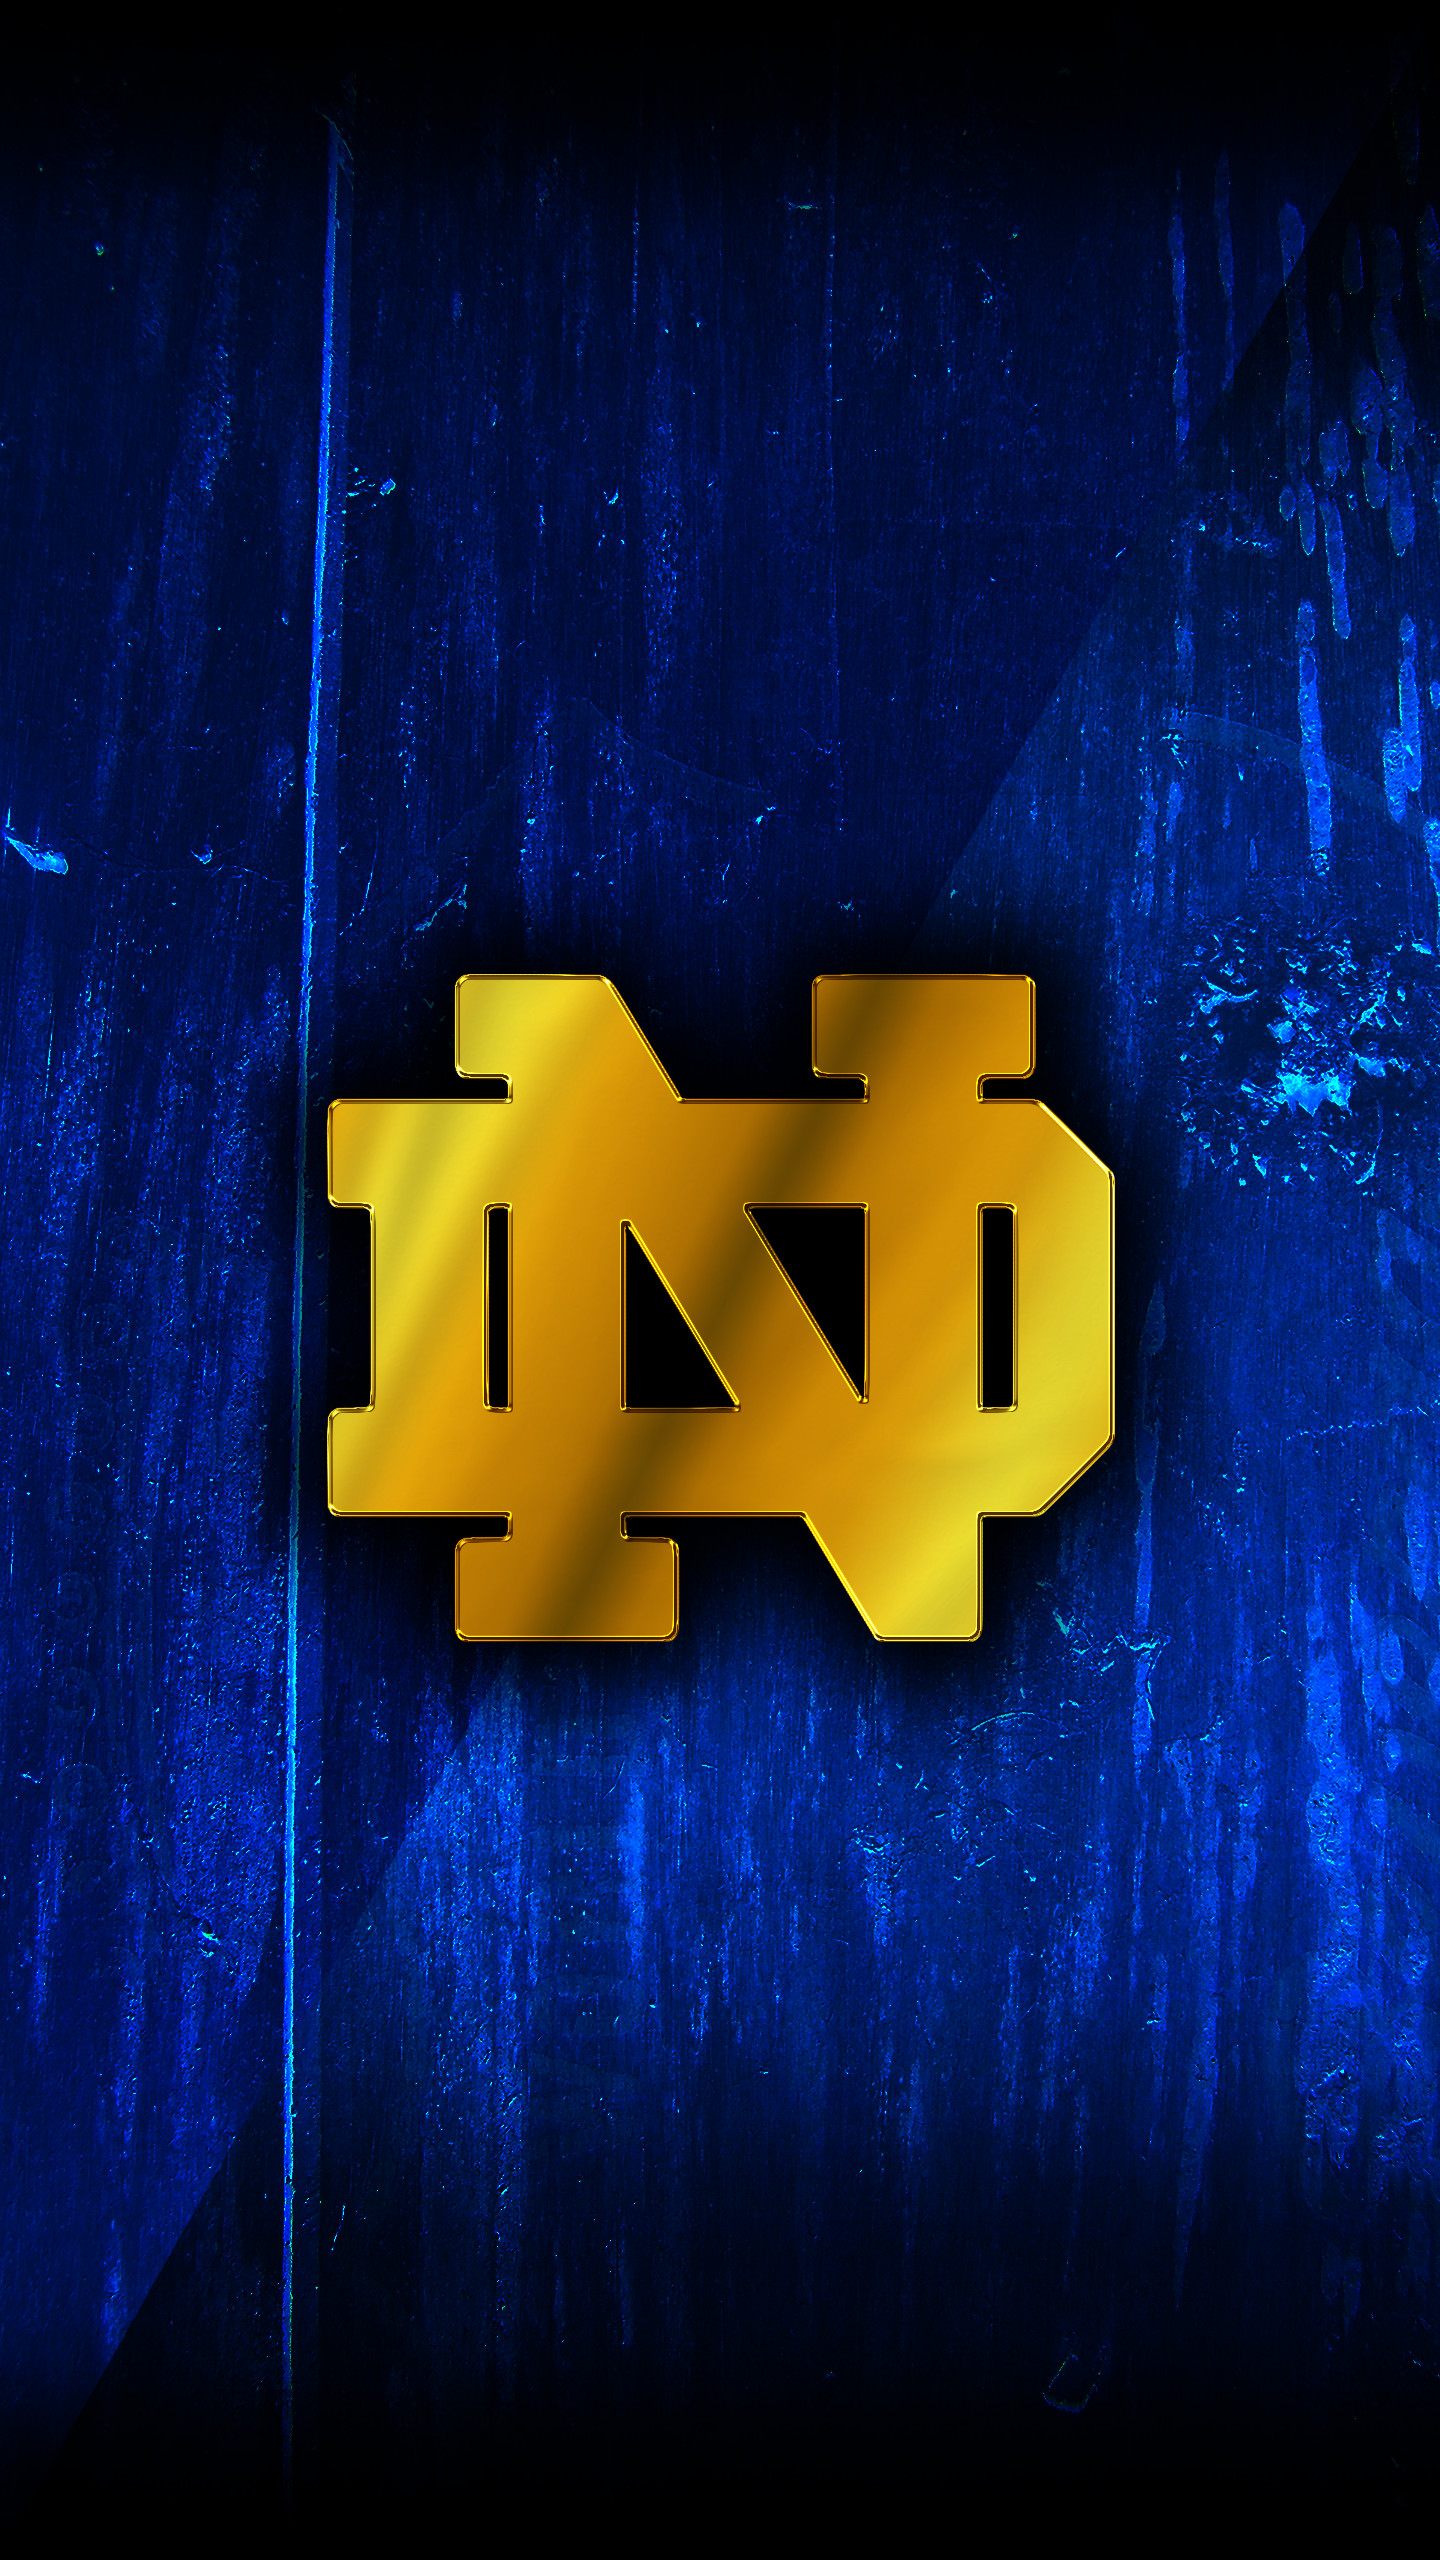 Notre dame fighting irish wallpapers 67 background pictures - Notre dame football wallpaper ...